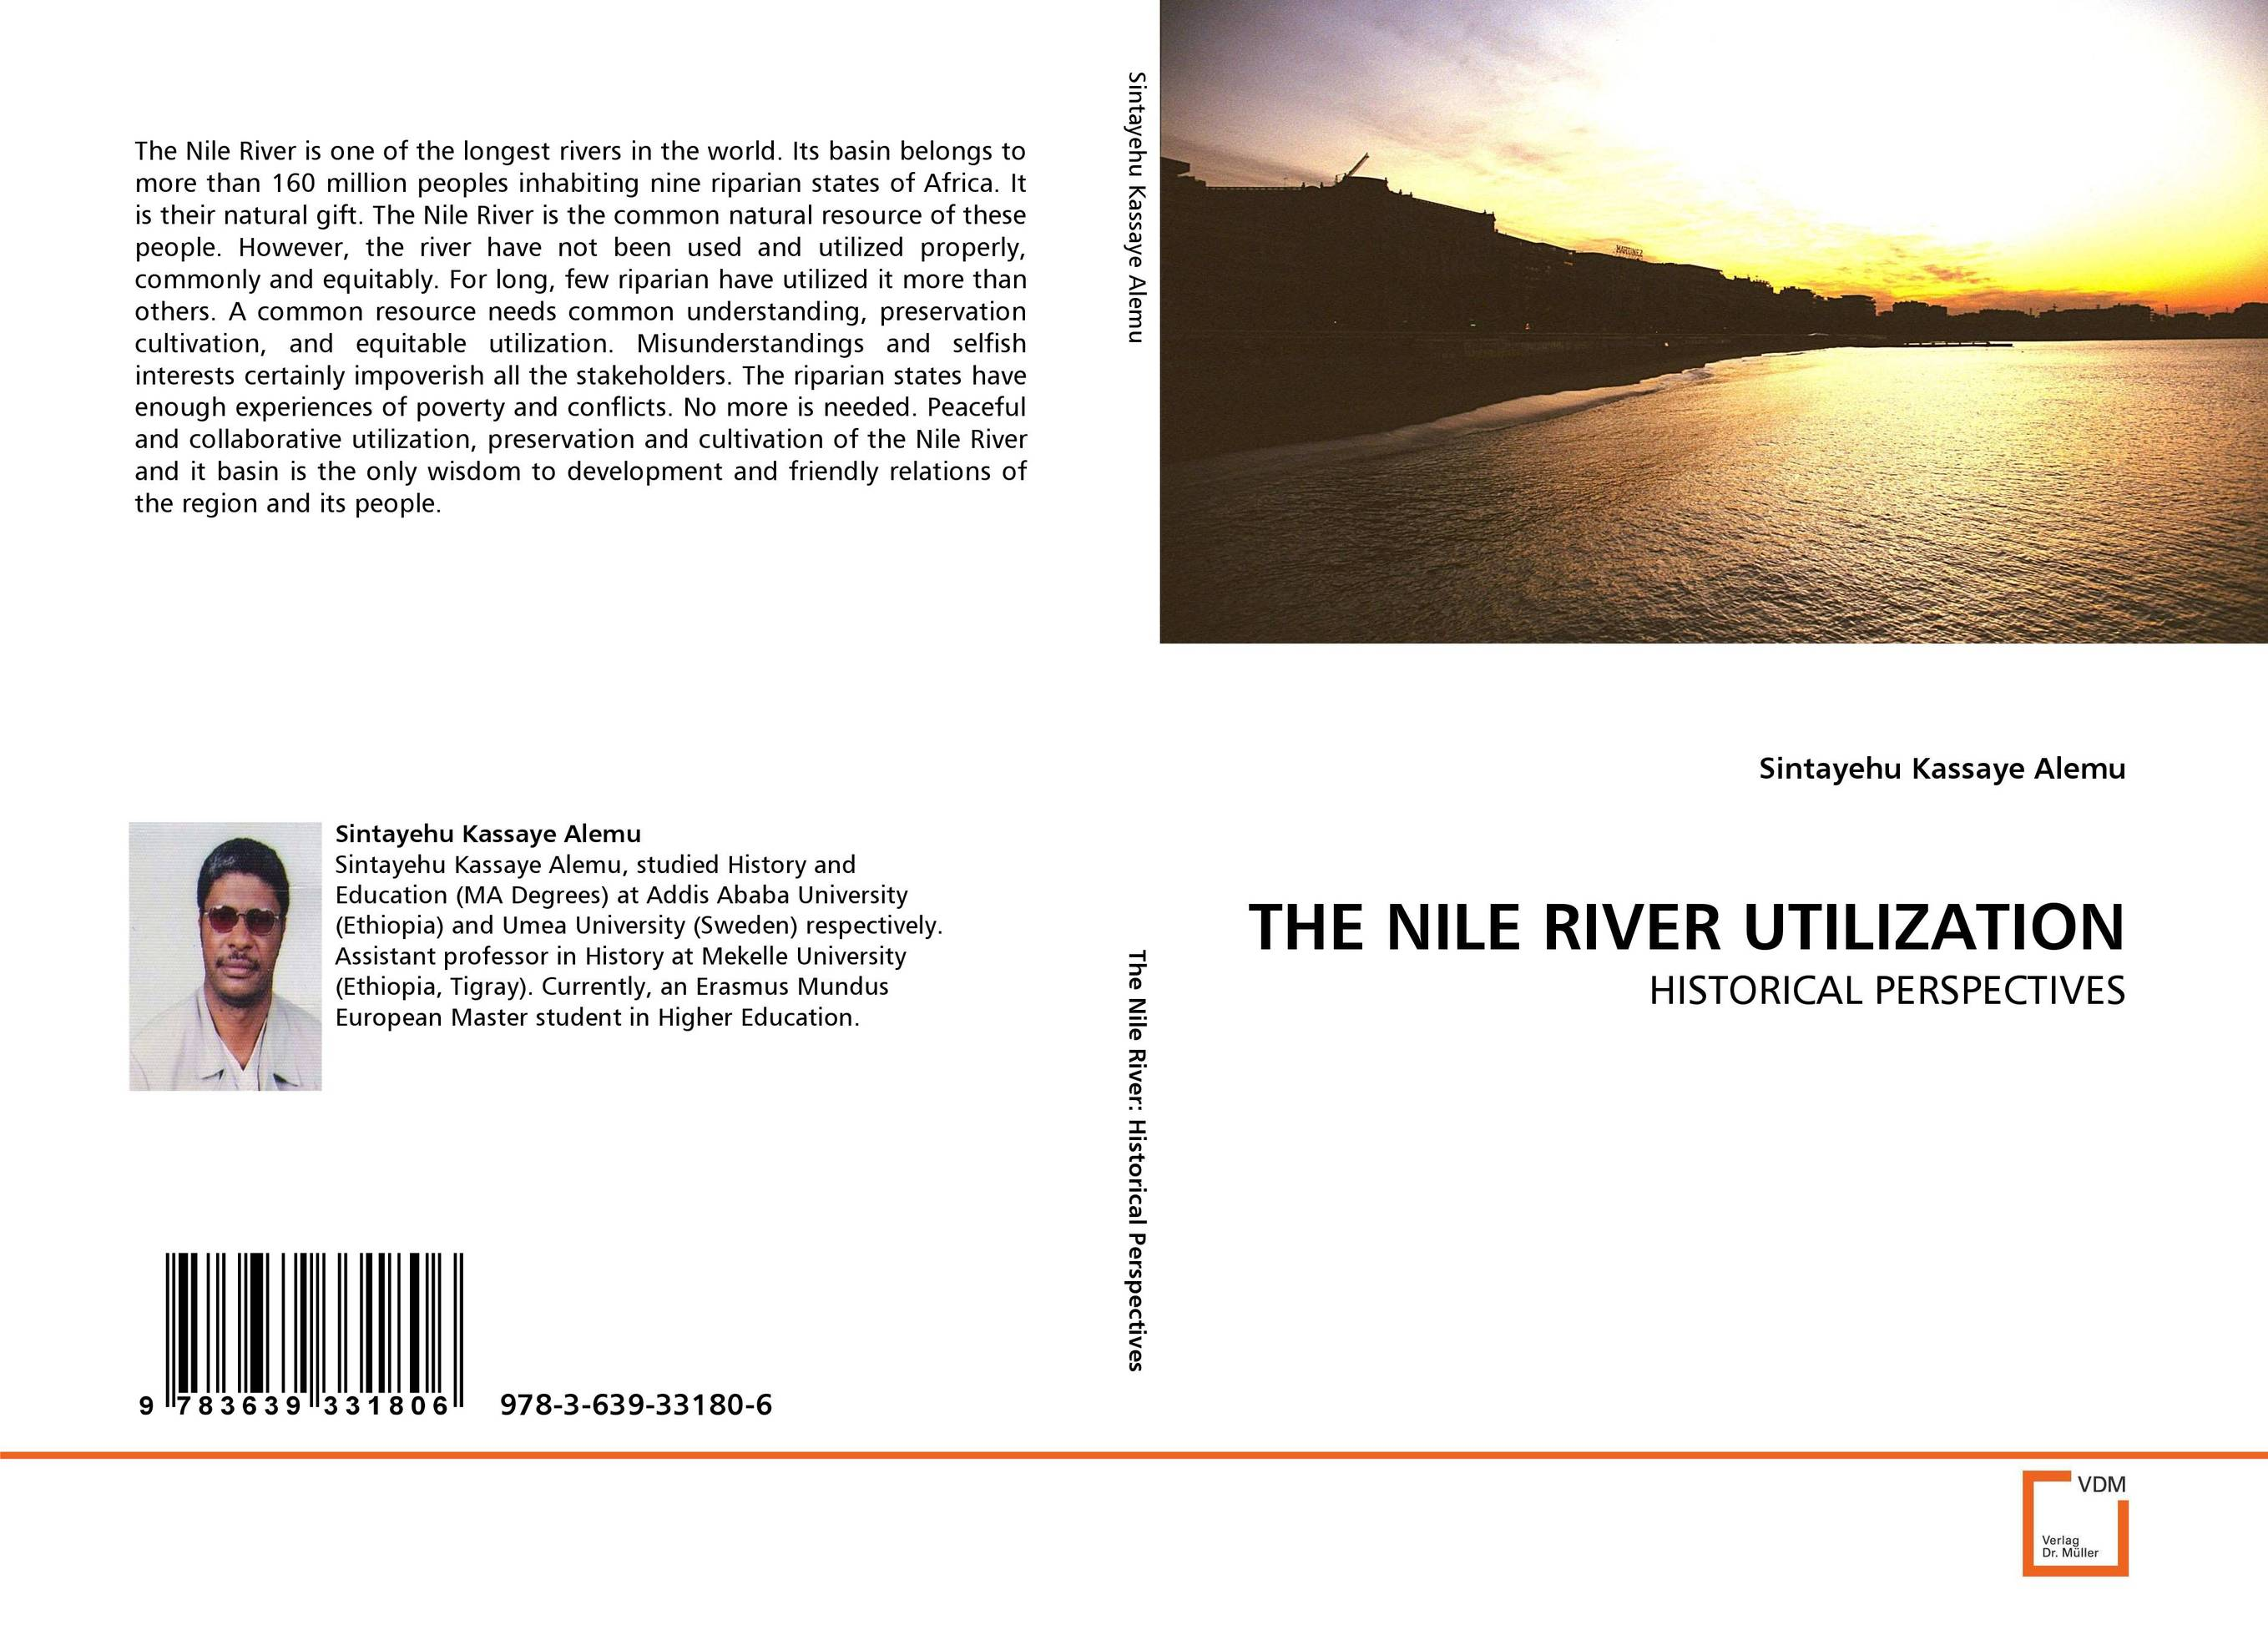 THE NILE RIVER UTILIZATION the common link